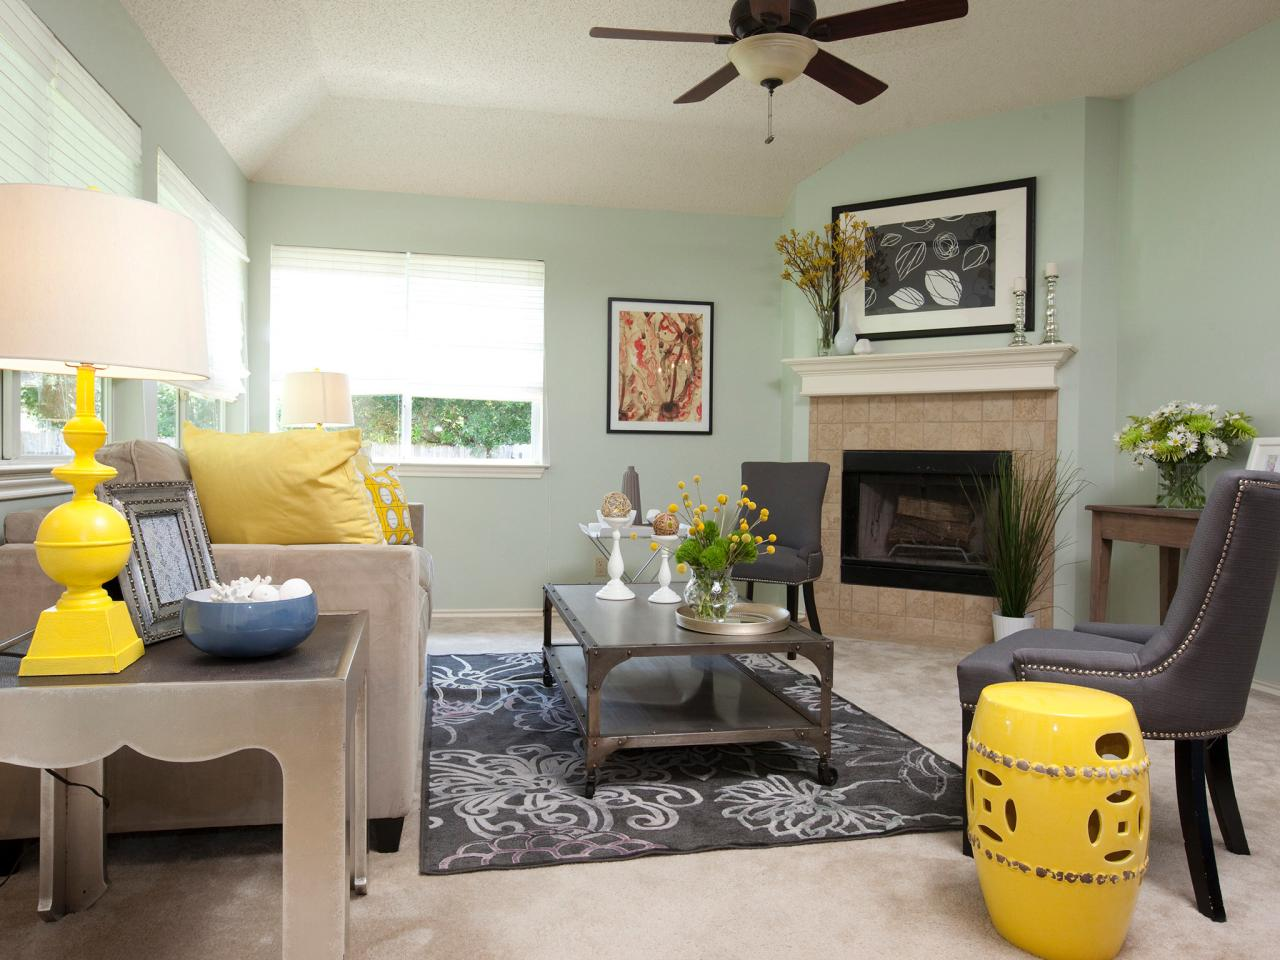 Mint-walls-soften-the-feeling-of-contrast-in-a-vibrantly-colored-room